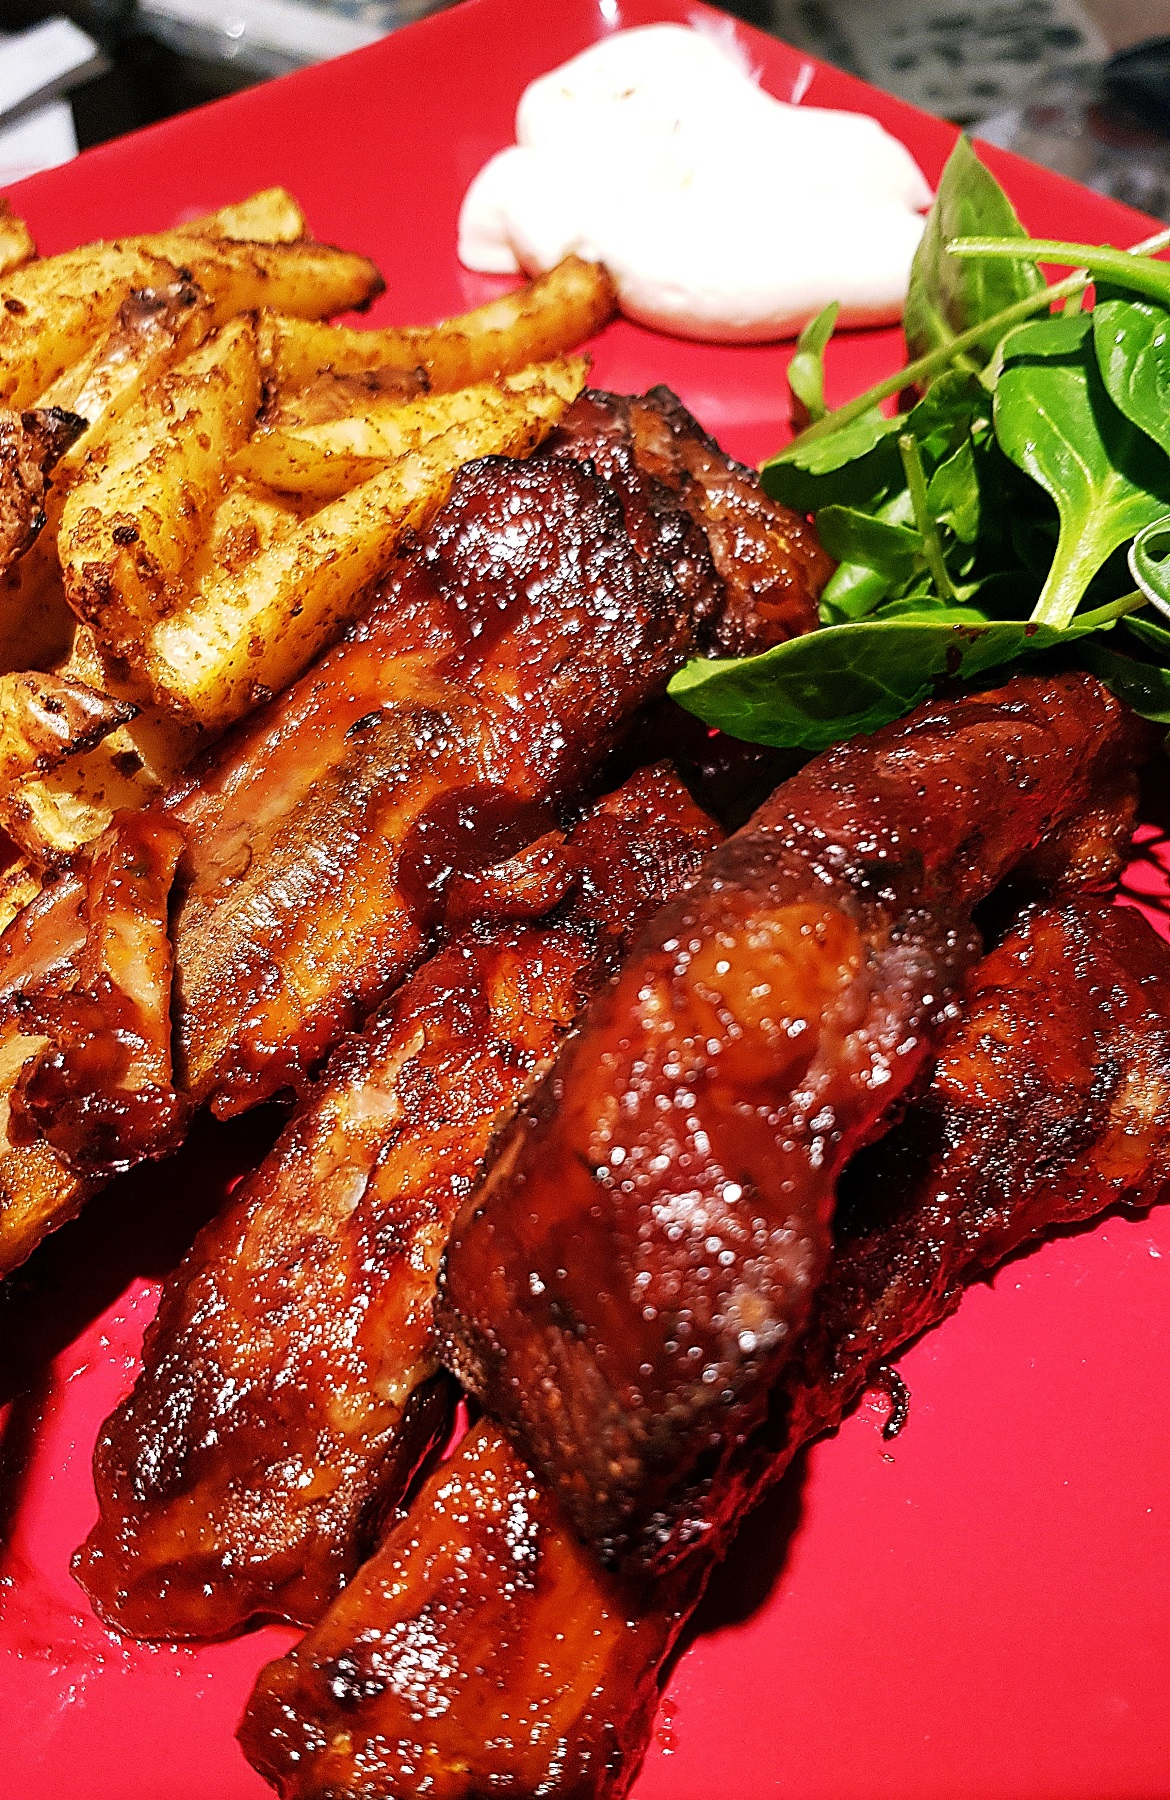 BBQ ribs - March 2018 Monthly Recap by BeckyBecky Blogs